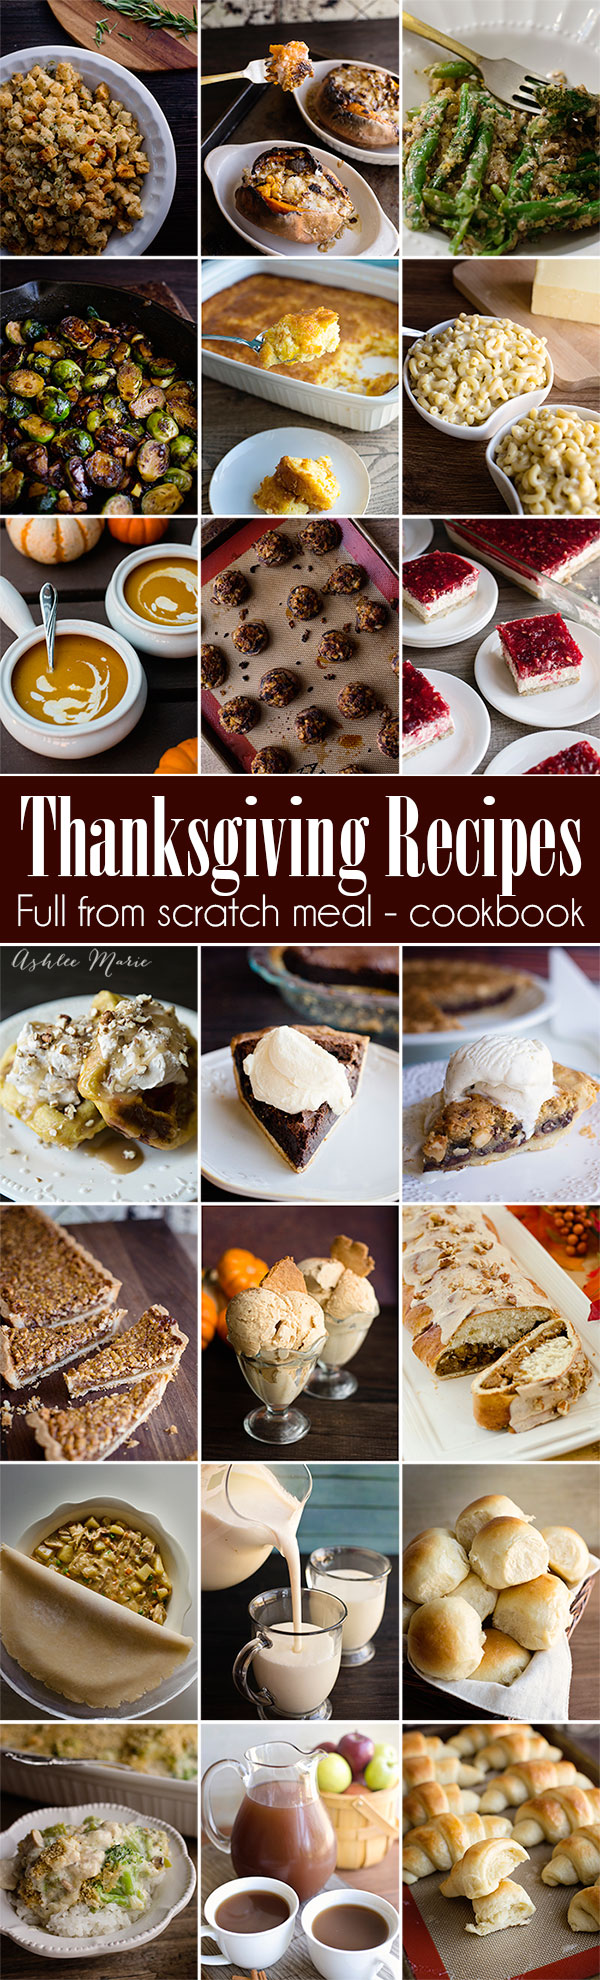 Homemade Thanksgiving - the perfect turkey, amazing sides, rich desserts, buttery breads, delicious drinks and even what to do with your leftovers. 43 amazing from scratch recipes you need at the dinner table